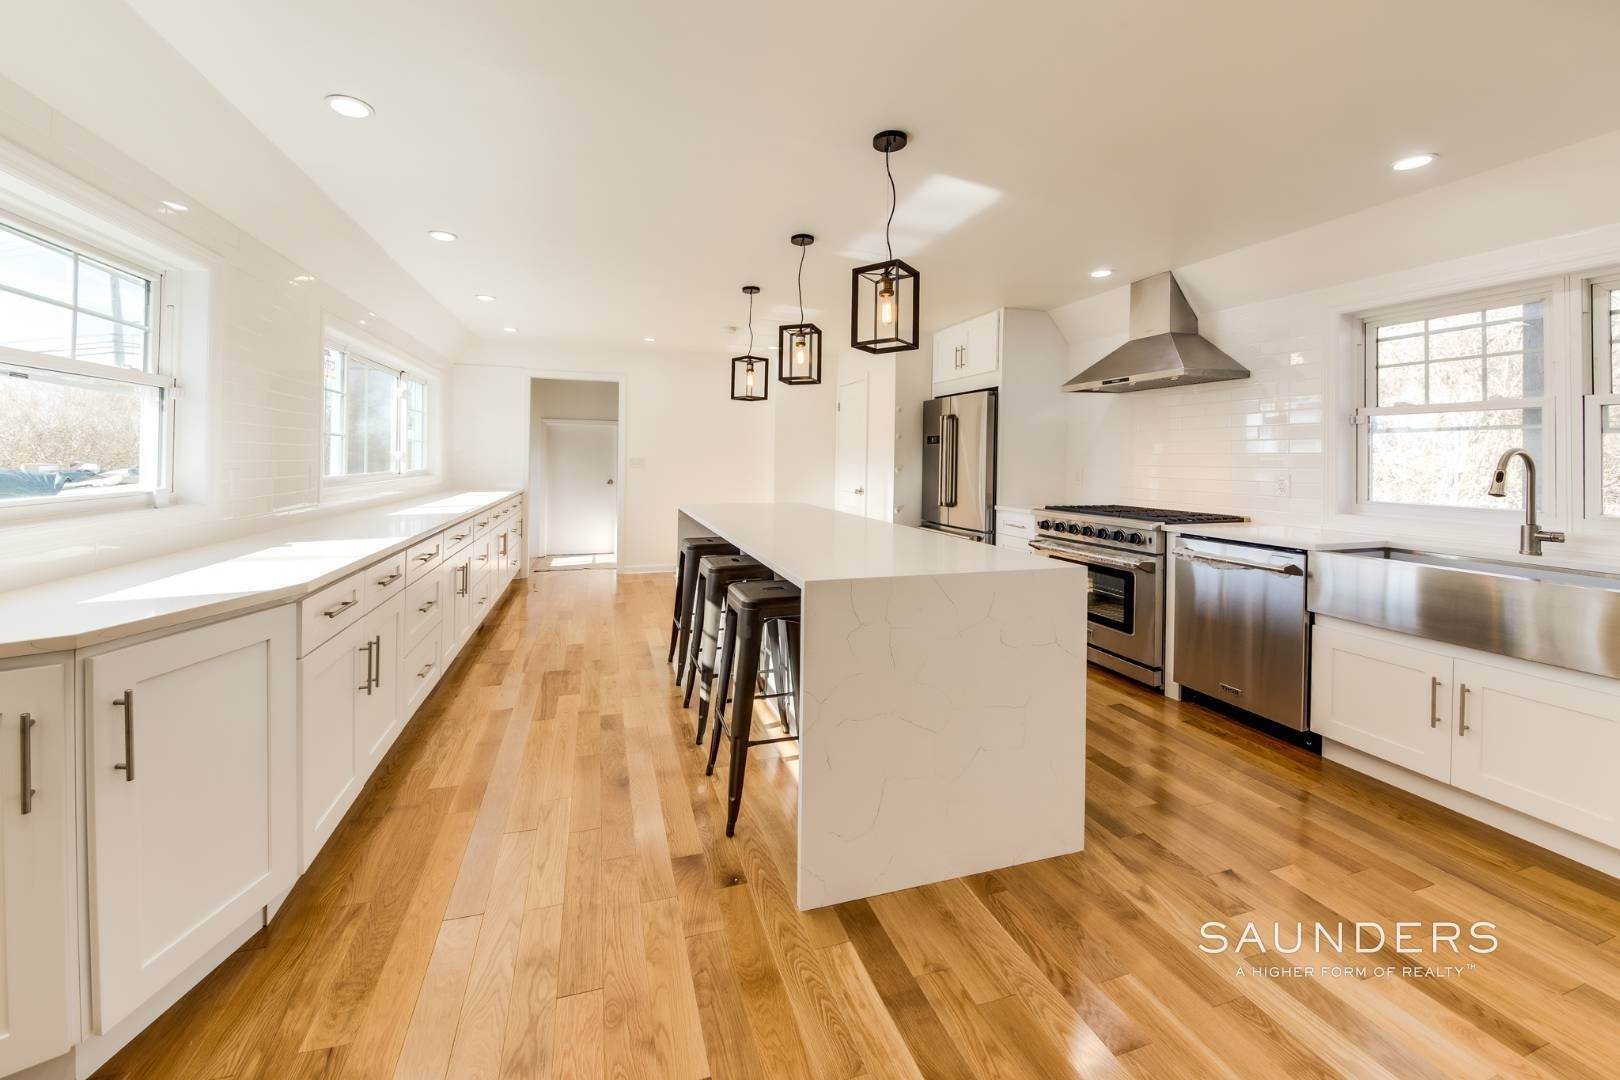 3. Single Family Homes for Sale at Montauk - New Custom Renovation 80 Essex Street, Montauk, East Hampton Town, NY 11954